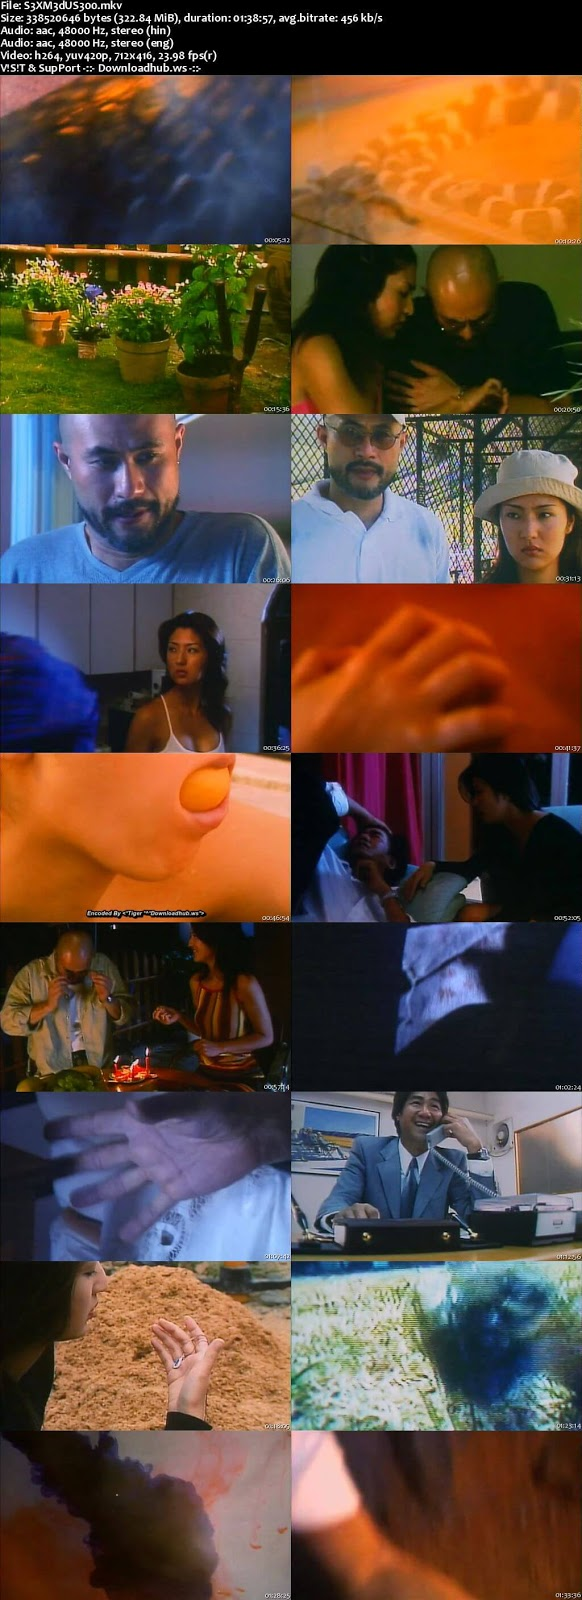 Sex Medusa 2001 Hindi Dual Audio 480p DVDRip Download